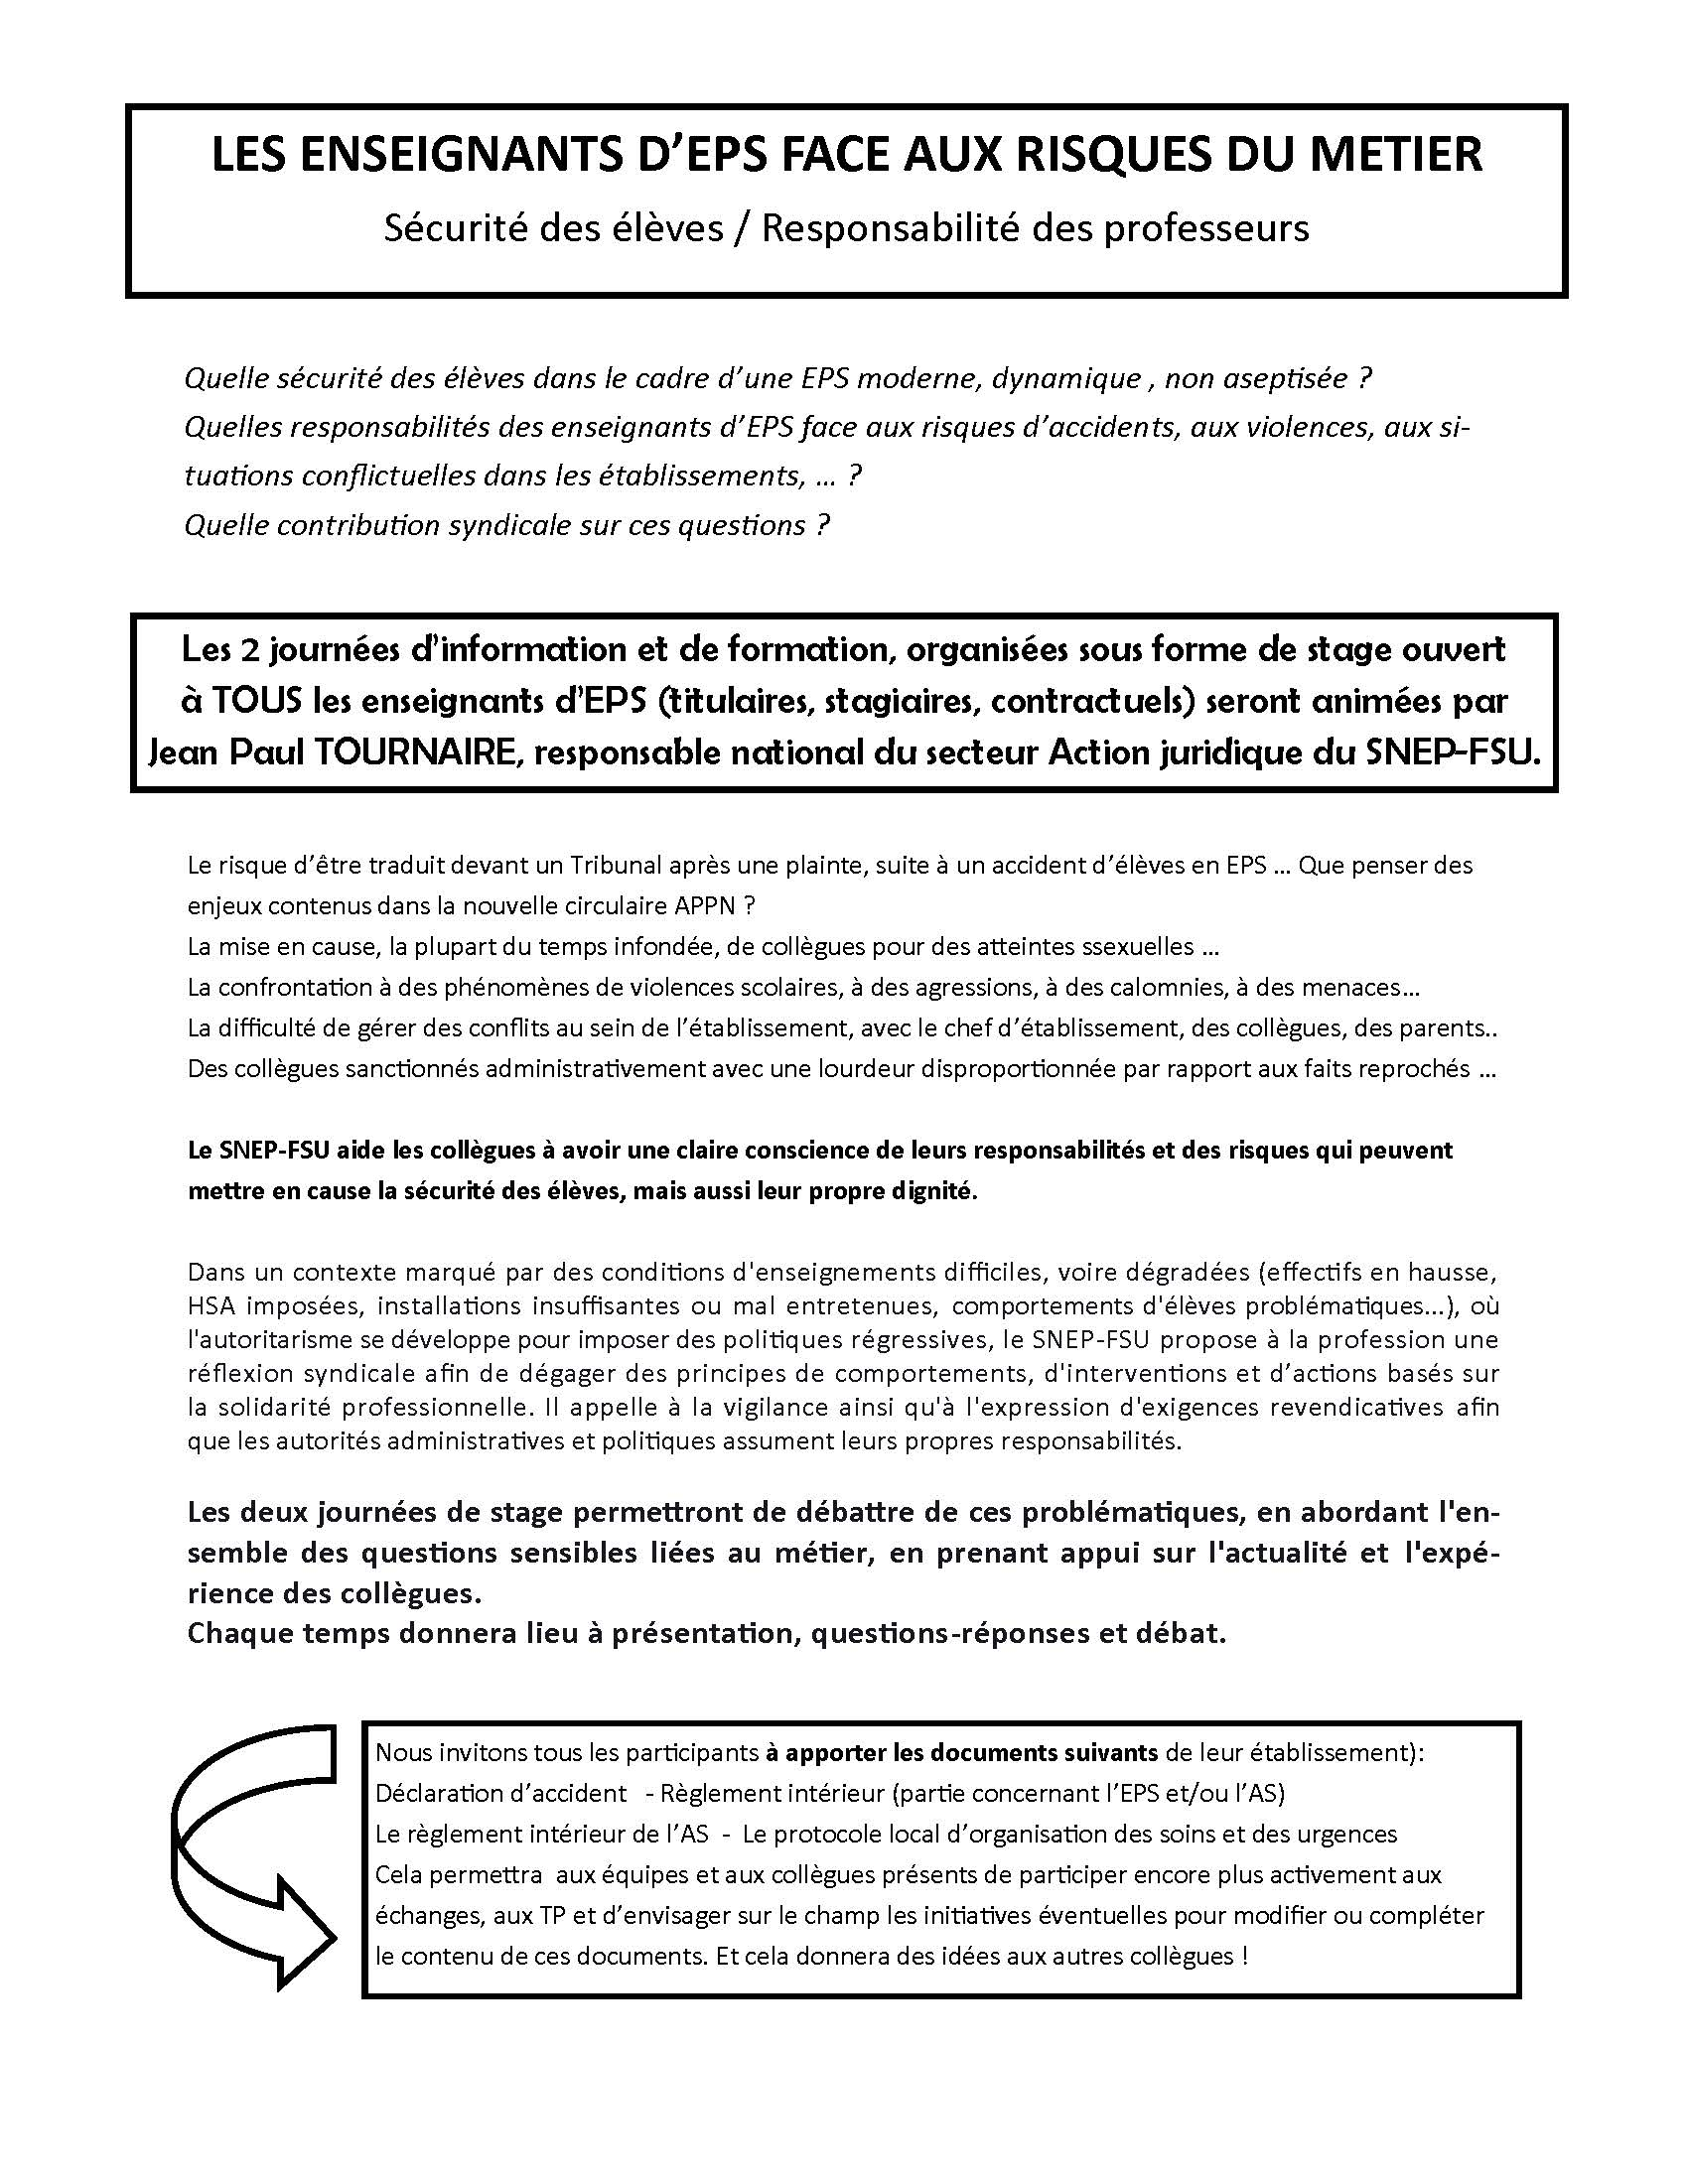 thumbnail of stages syndicaux securité responsabilité jpt 2018 2019